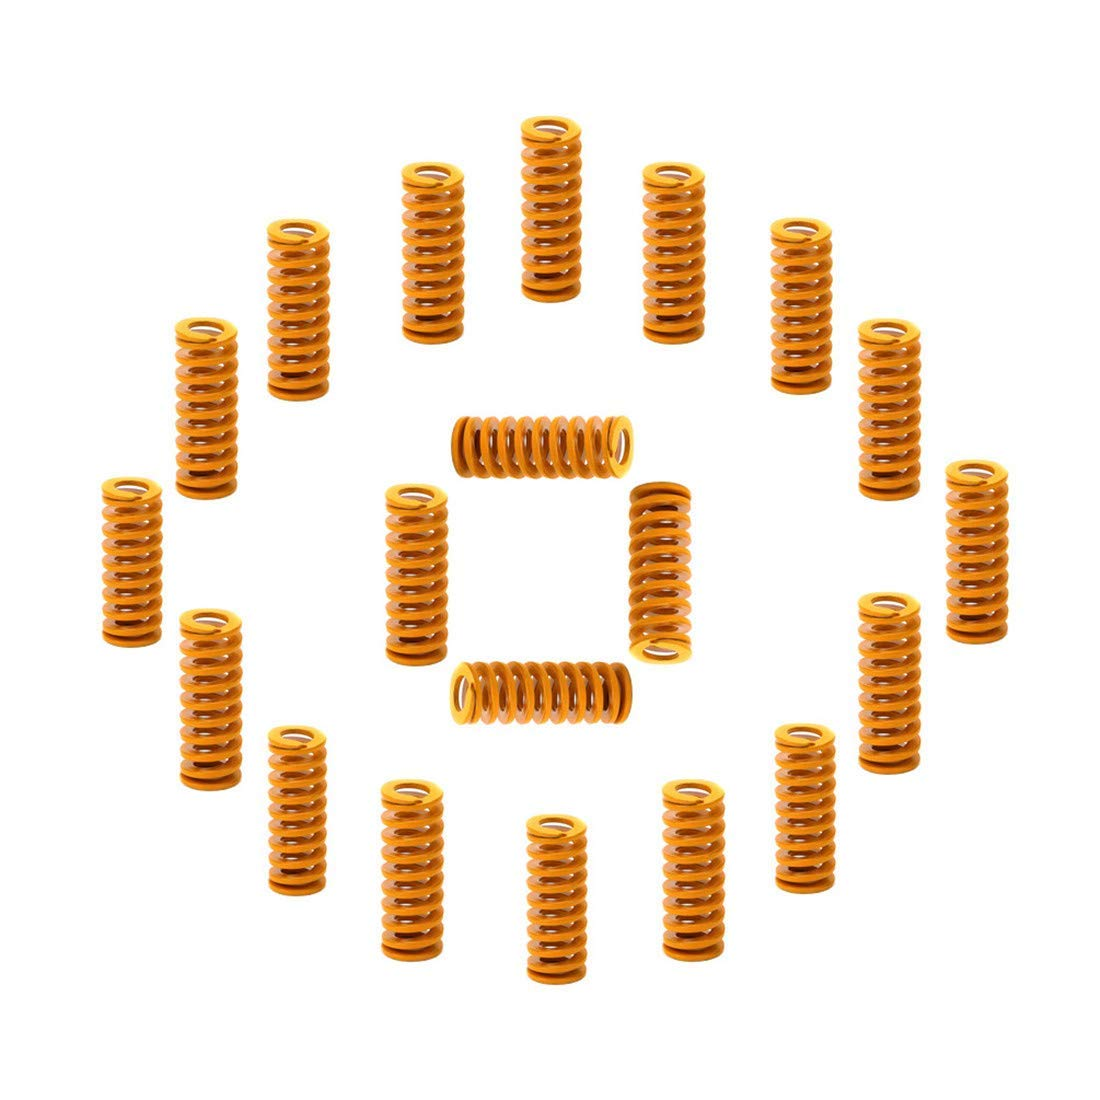 Zeelo 3D Printer Springs 20 Pack 0.31 in OD 0.78 in Length Compression Springs M3 Screw Light Load for Creality CR-10 10S S4 Ender 3 Motherboard Bottom Connect Leveling